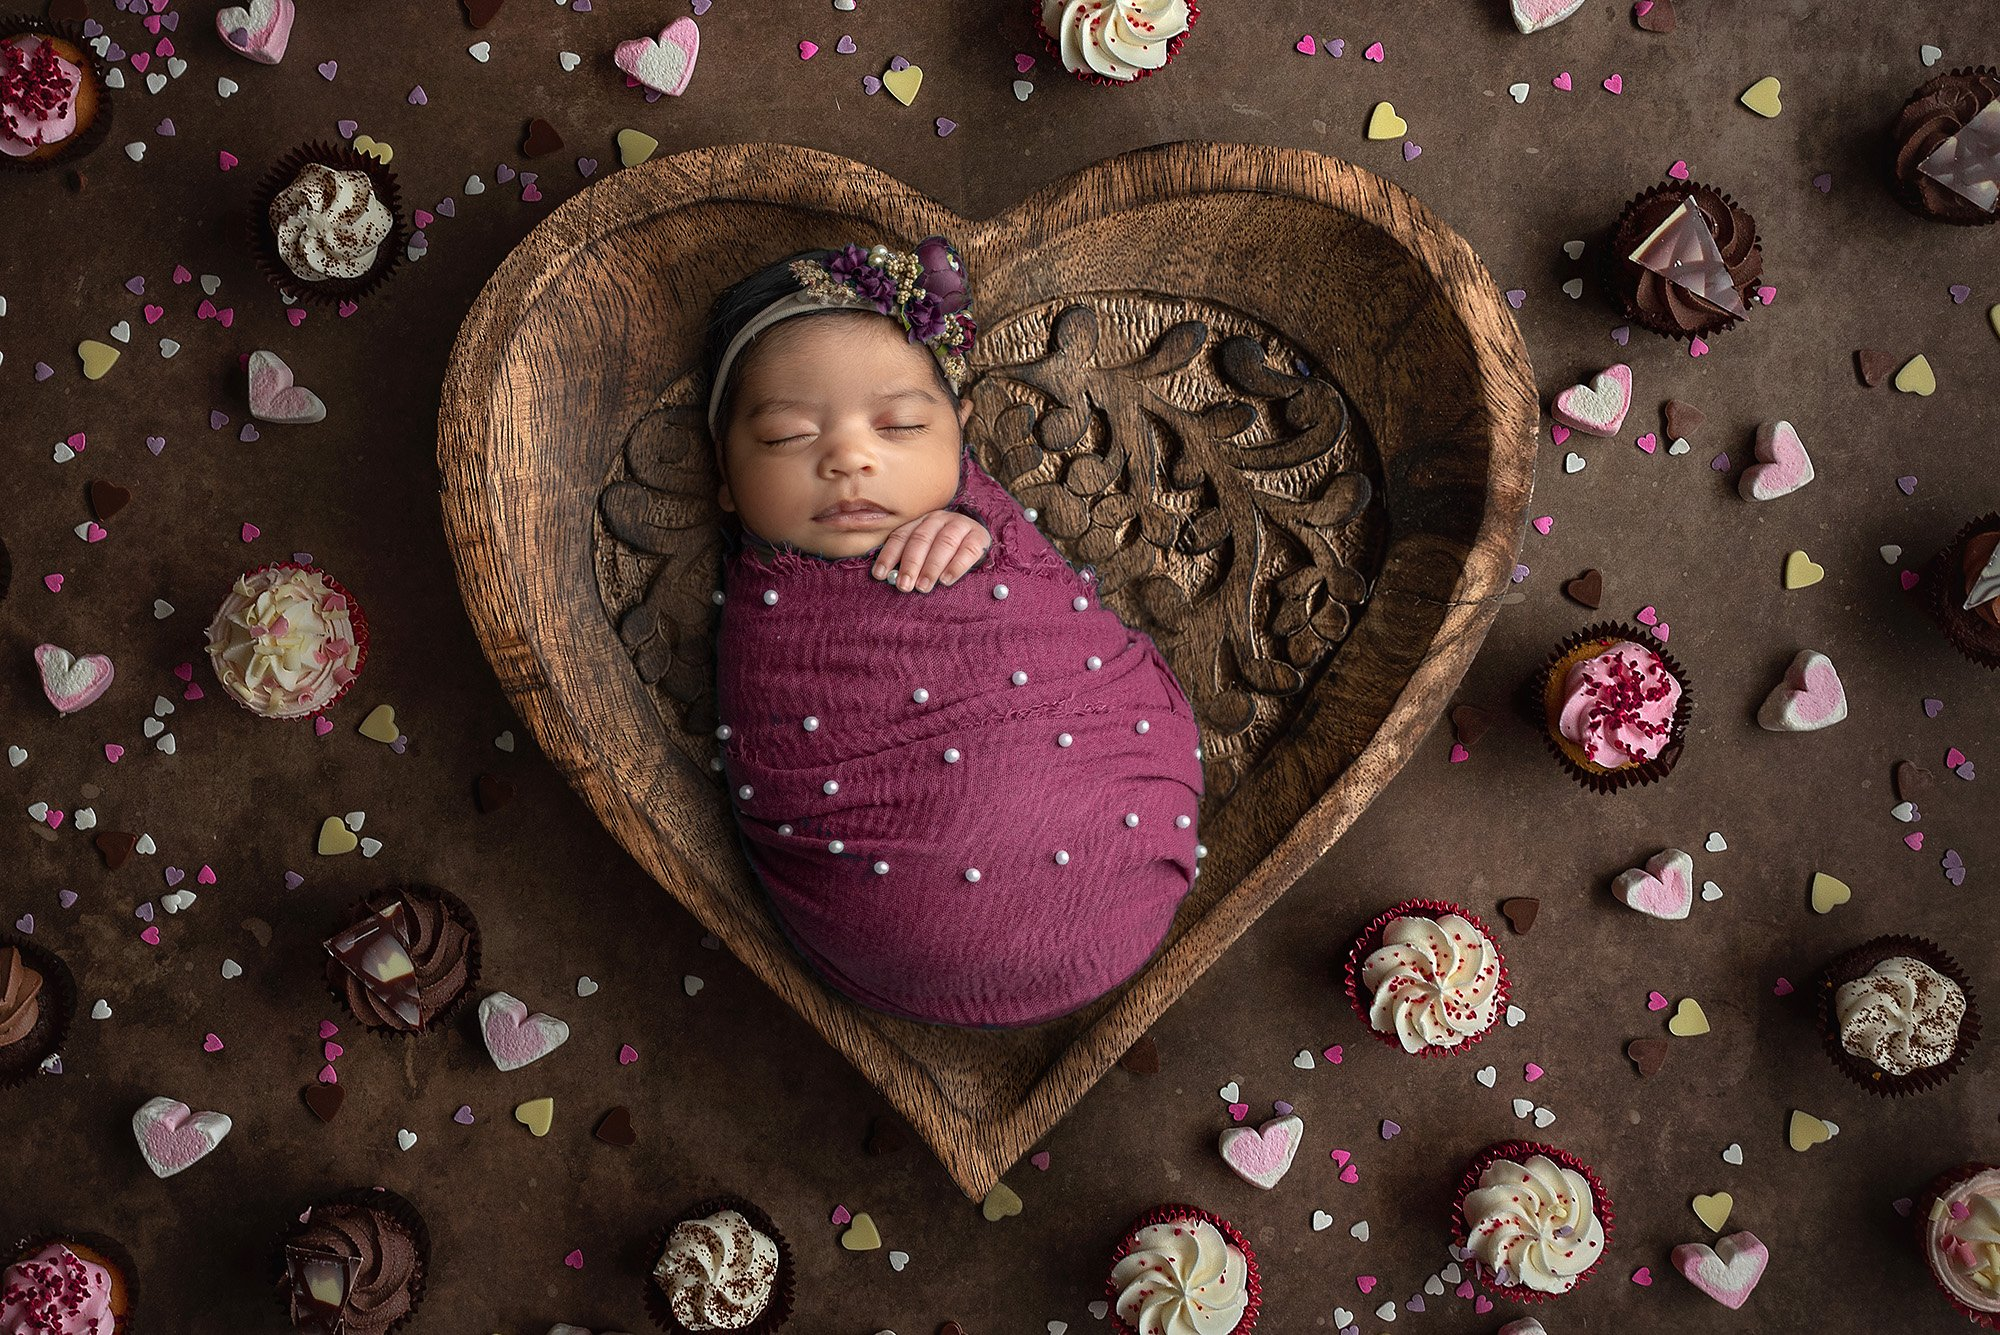 sleeping newborn baby girl swaddled in magenta wrap with pearls wearing purple floral headband laying in wooden heart bowl surrounded by cupcakes and heart candies